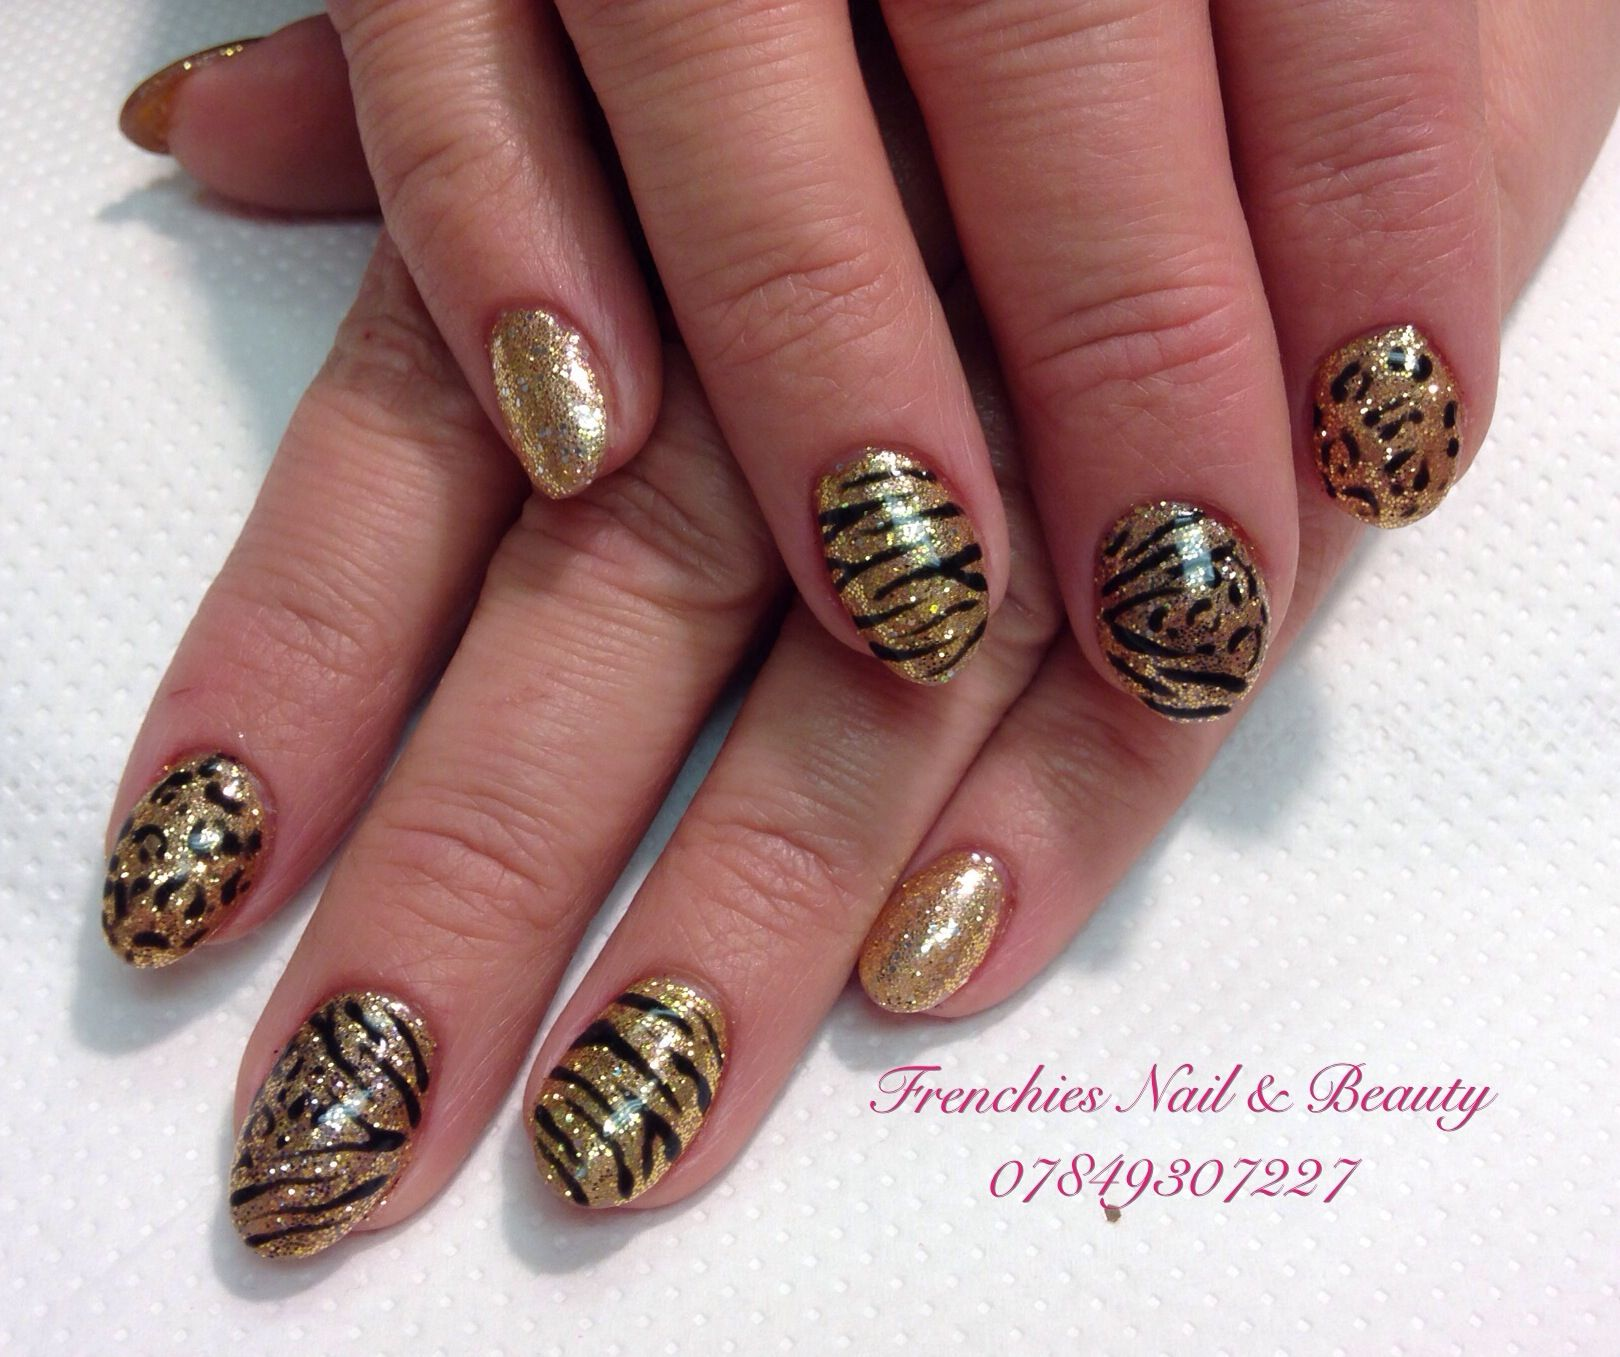 Acrylic overlay on natural nails with glitter &\'freehand design x ...